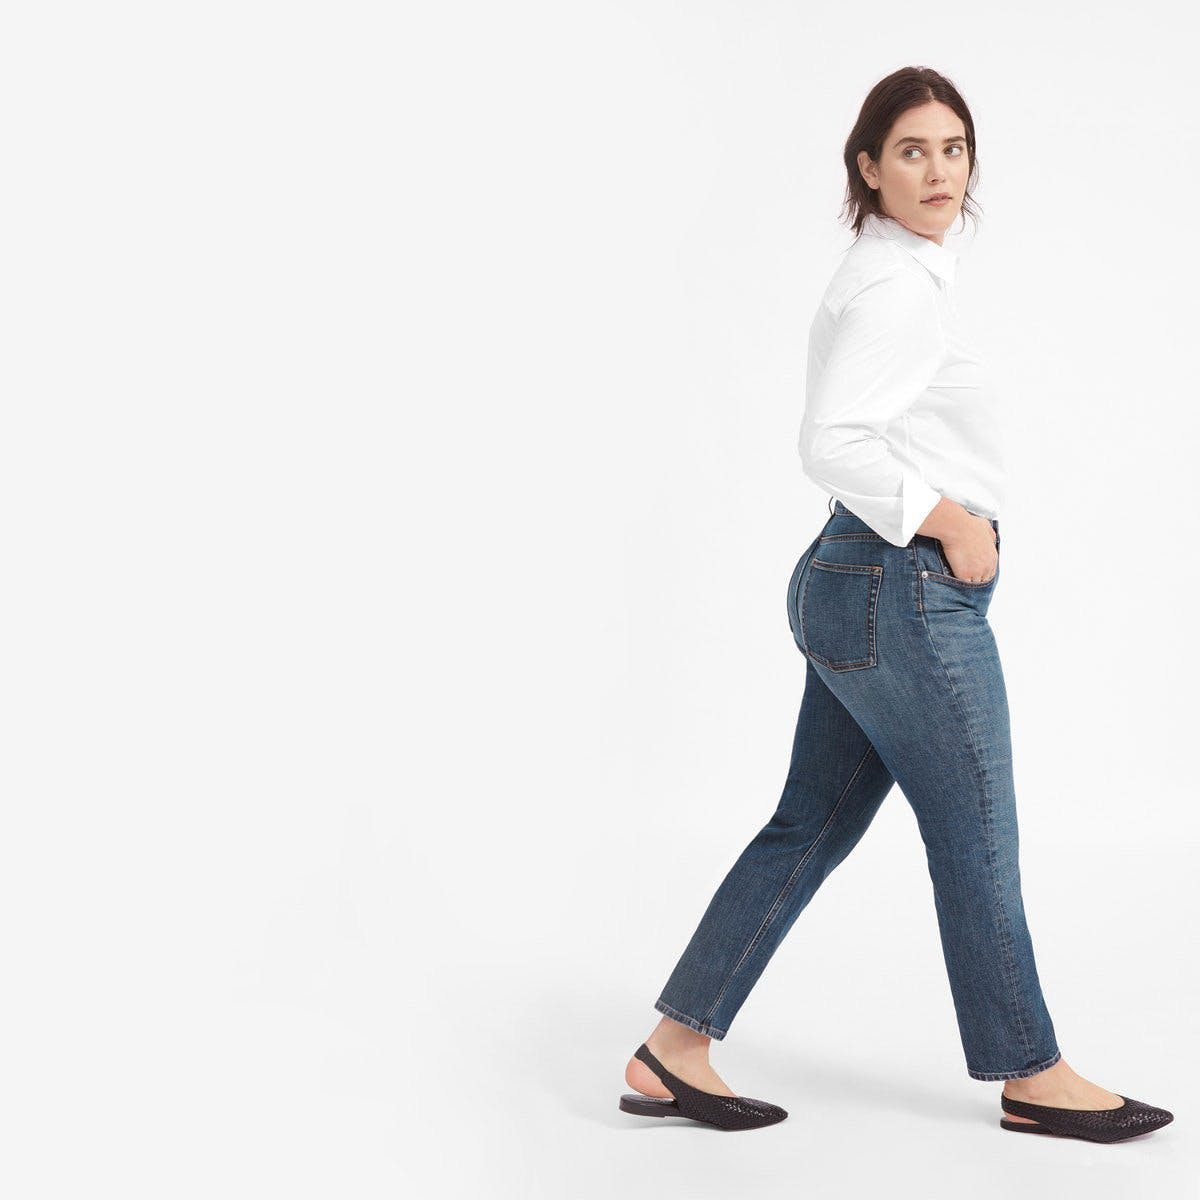 everlane, everlane jeans, everlane denim, japanese denim, the cheeky jeans, straight leg jeans, high rise jeans, tilted jeans, medium dark denim, cropped jeans, denimblog, denim blog